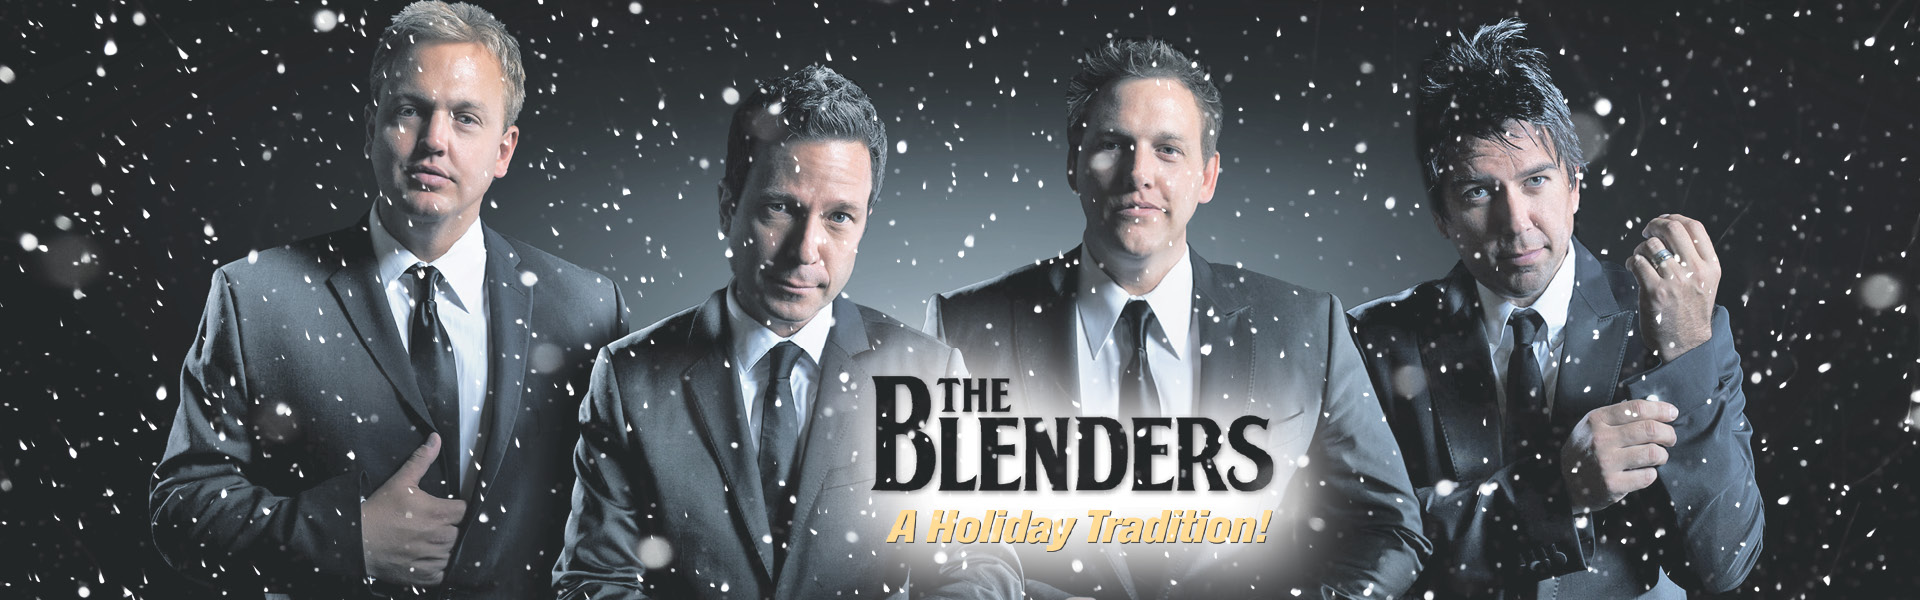 Picture of music group The Blenders